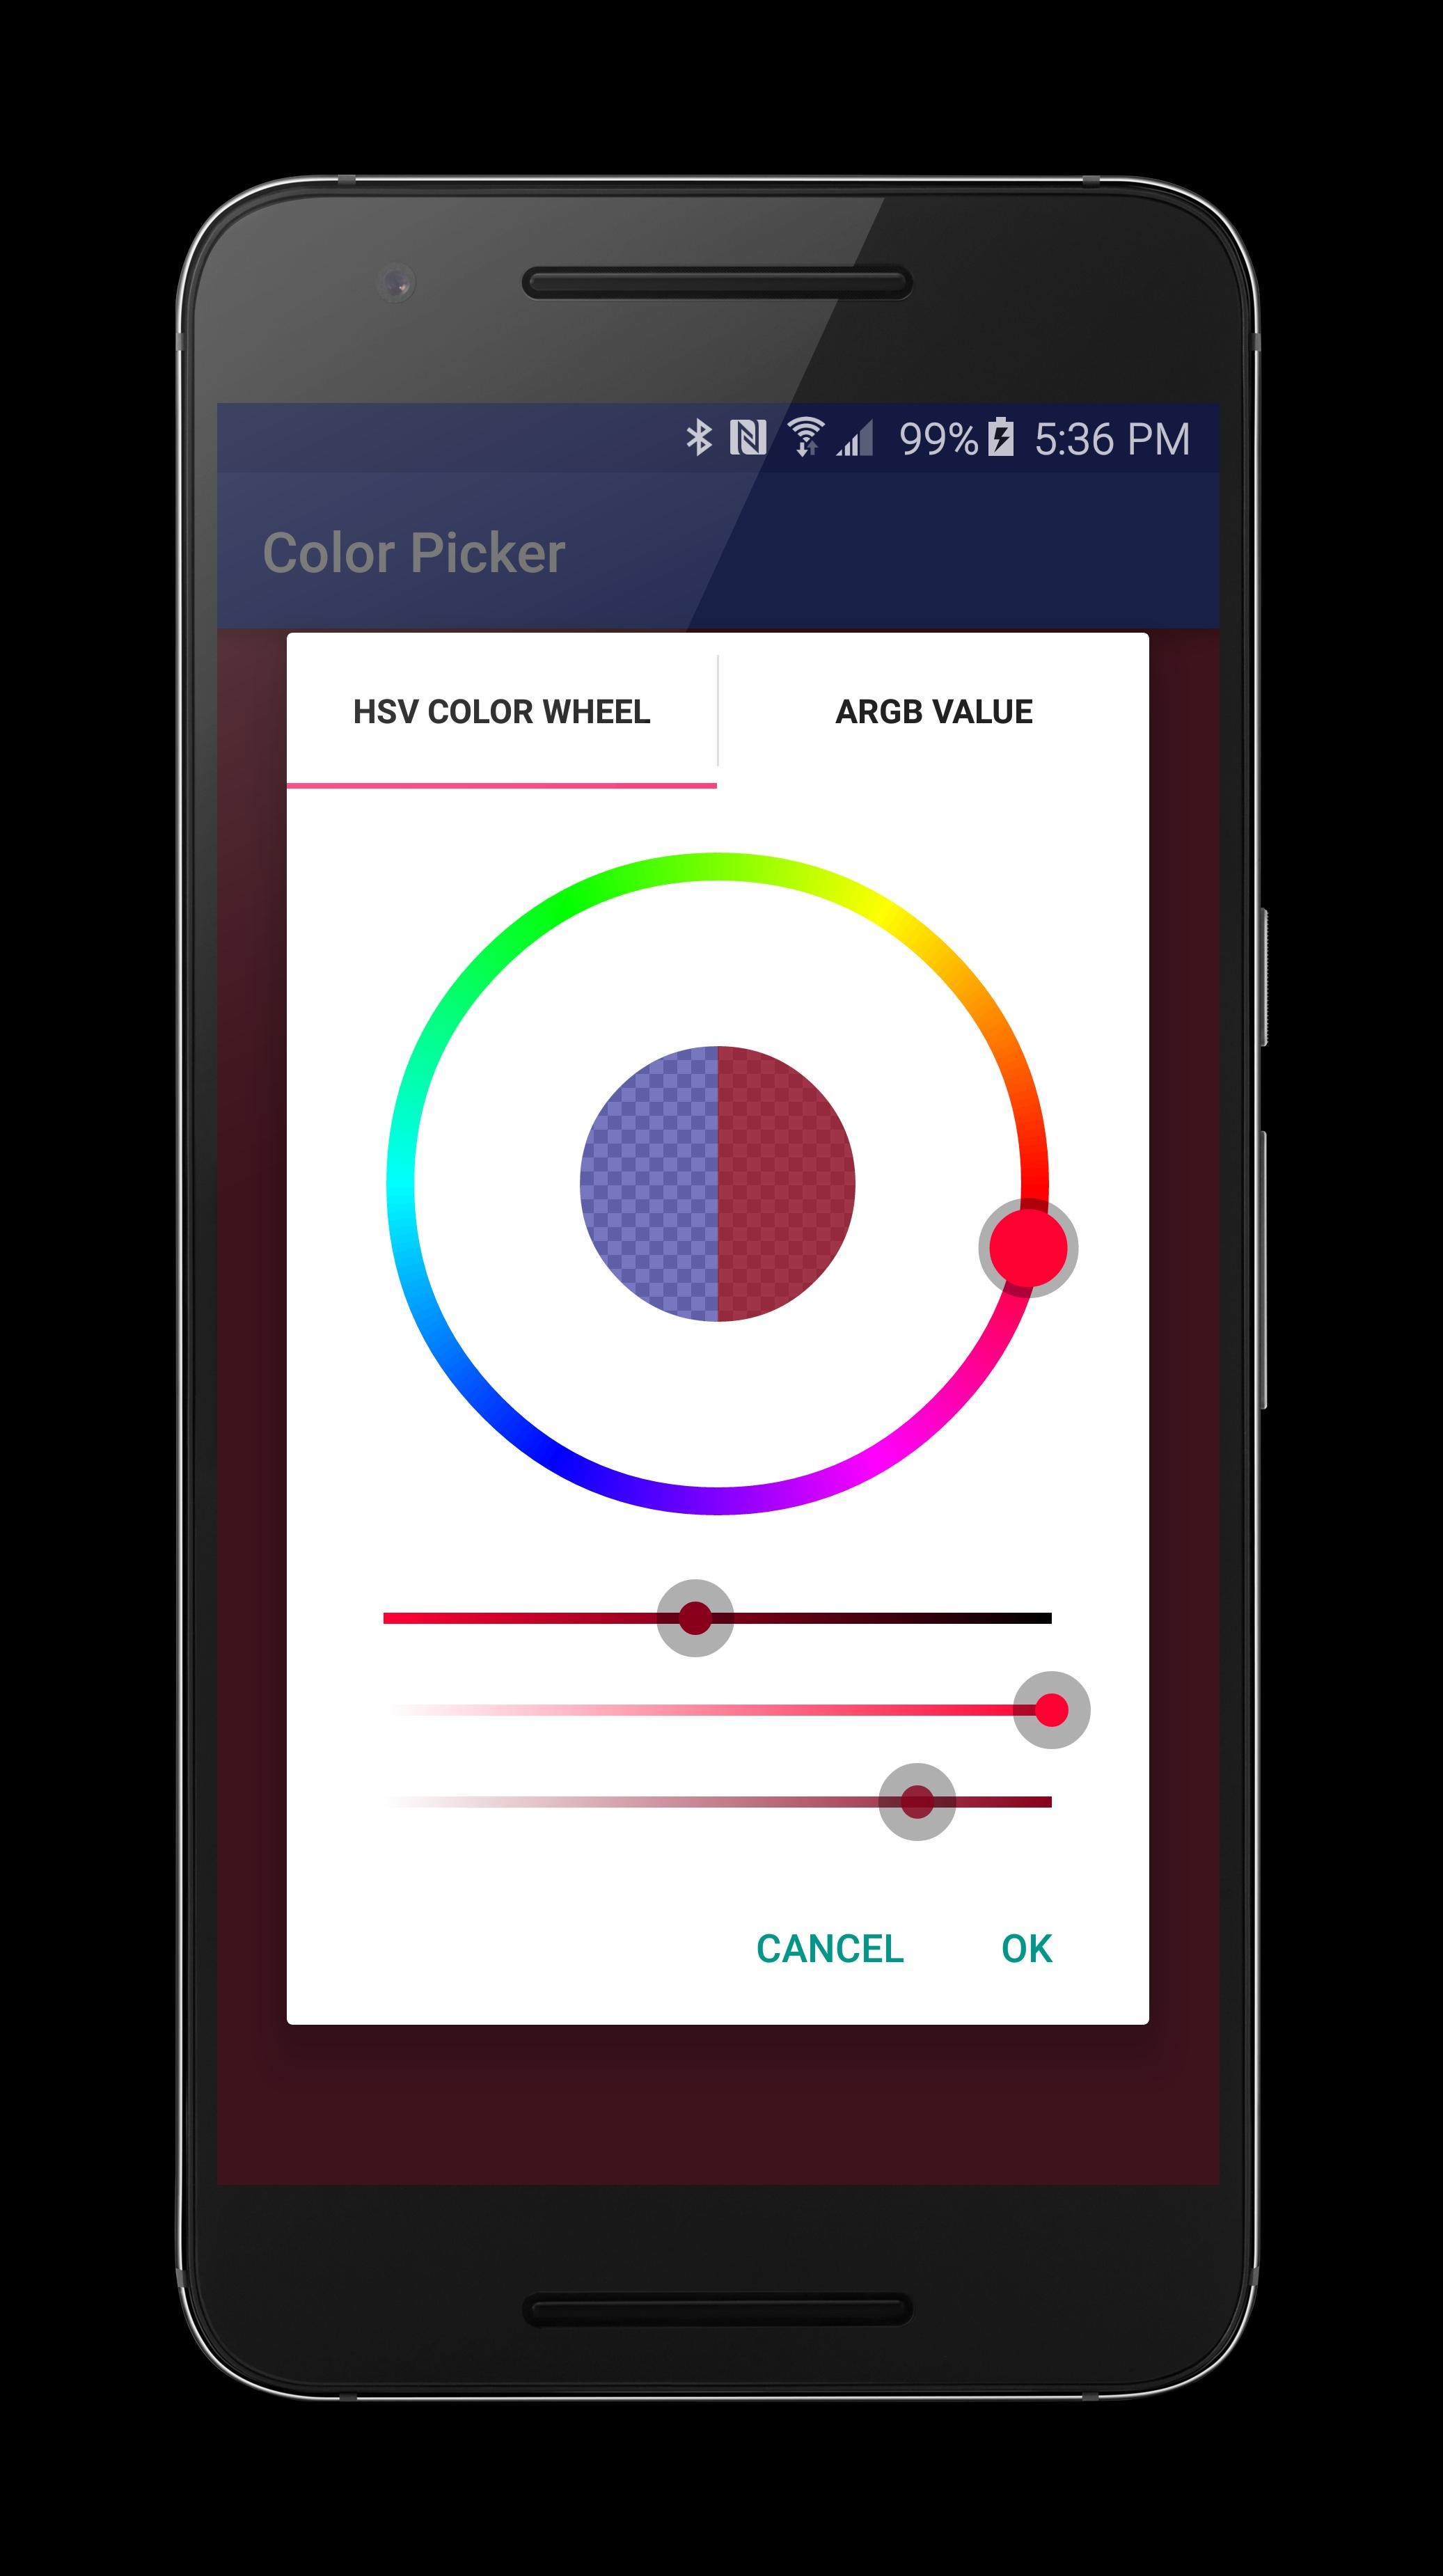 Android Image Picker color picker demo for android - apk download